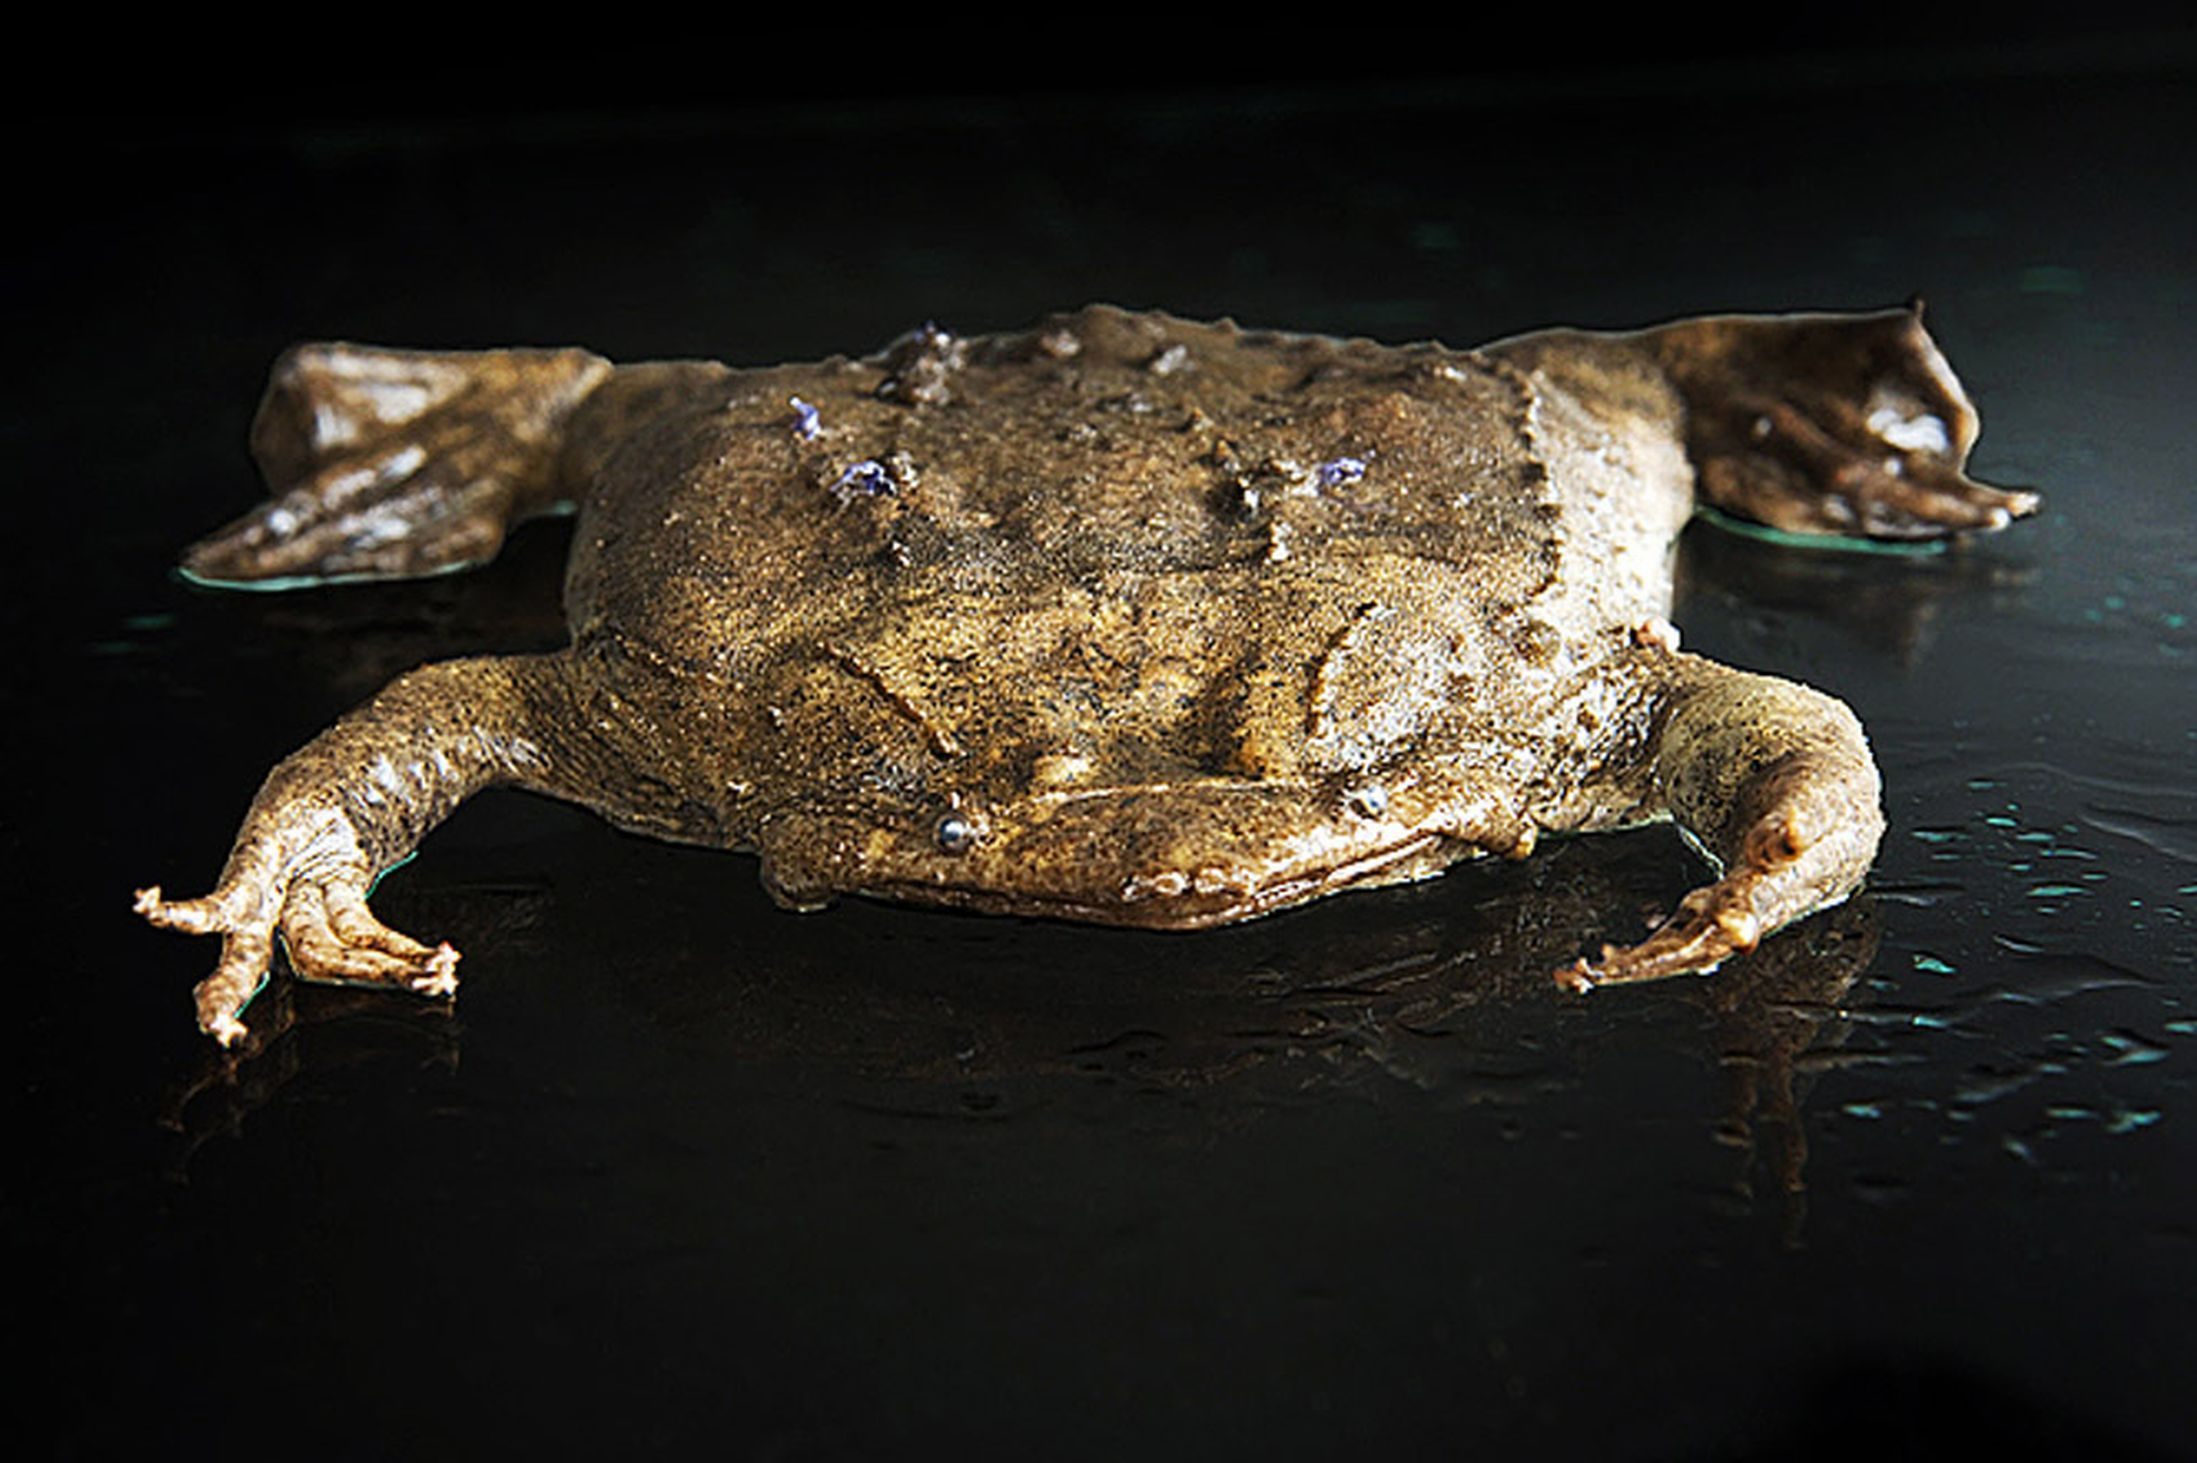 World's ugliest creatures: The kings of the mingers and why we must save them - #creatures #kings #mingers #ugliest #world - #frogtypes